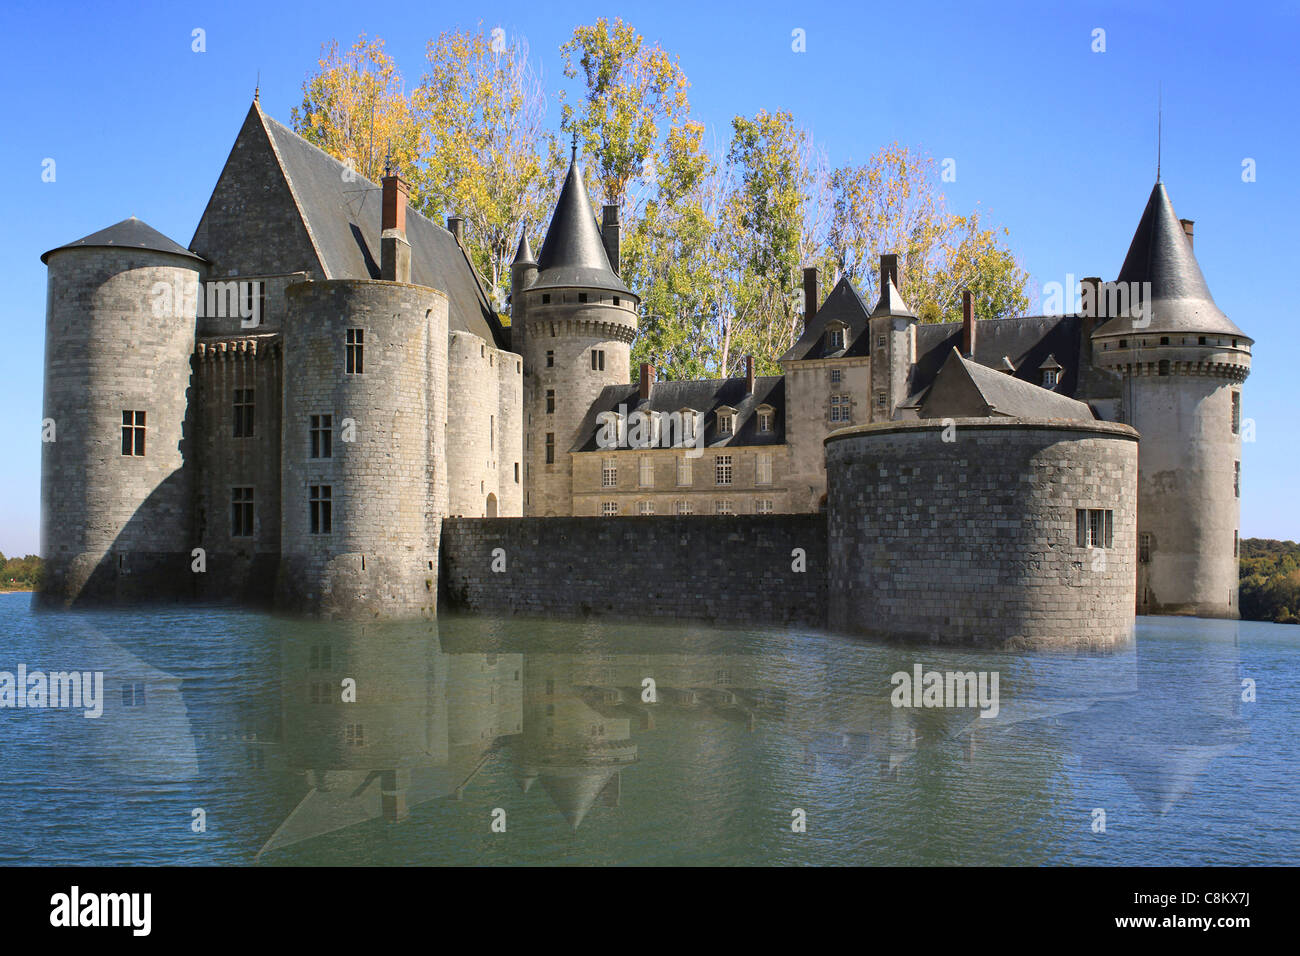 photo of a historic castle in France - Stock Image